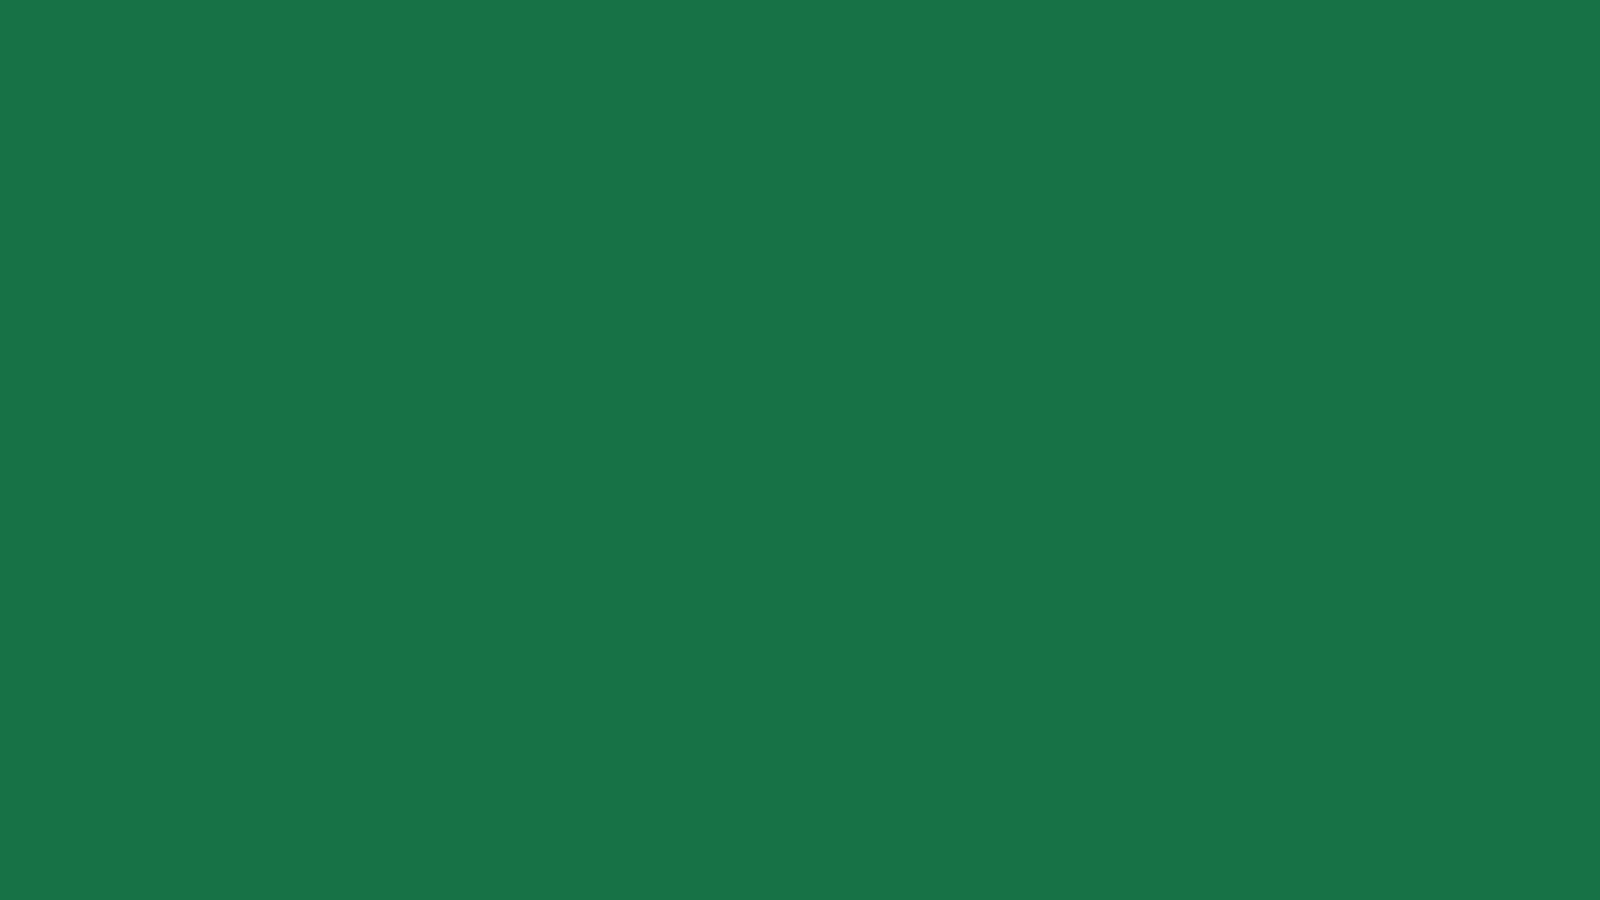 1600x900 Dark Spring Green Solid Color Background